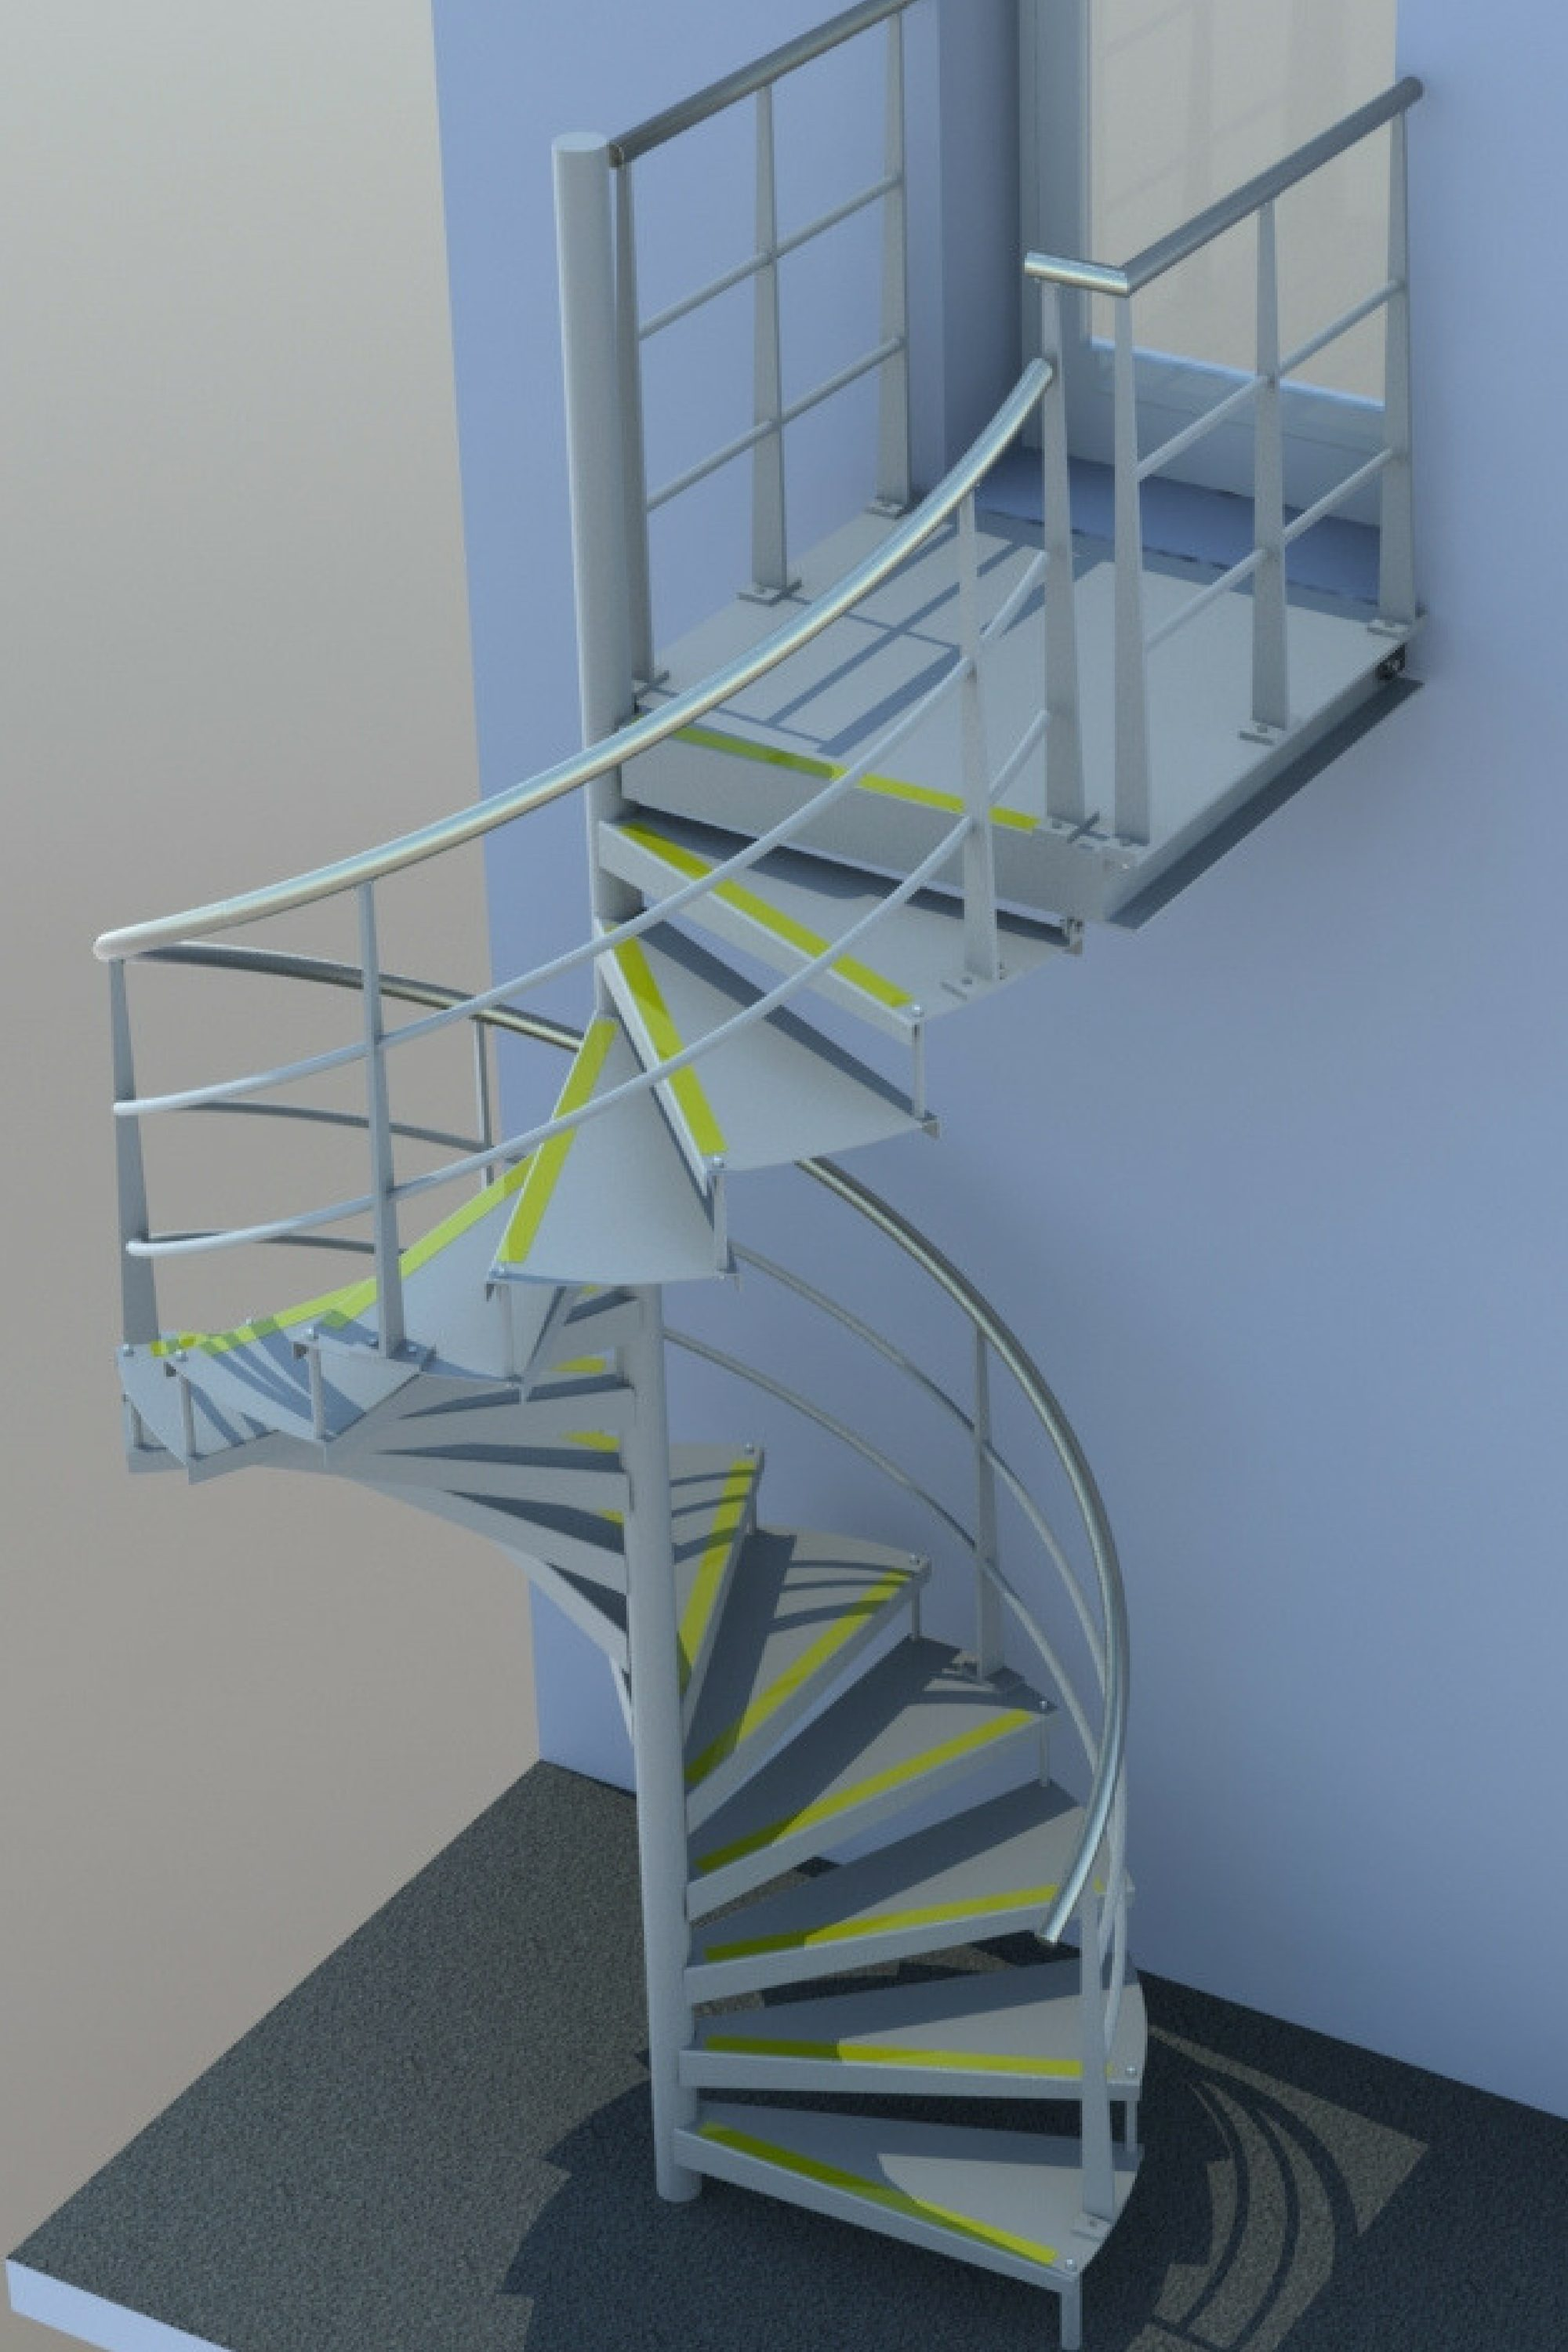 Render of Dyson fire escape stair